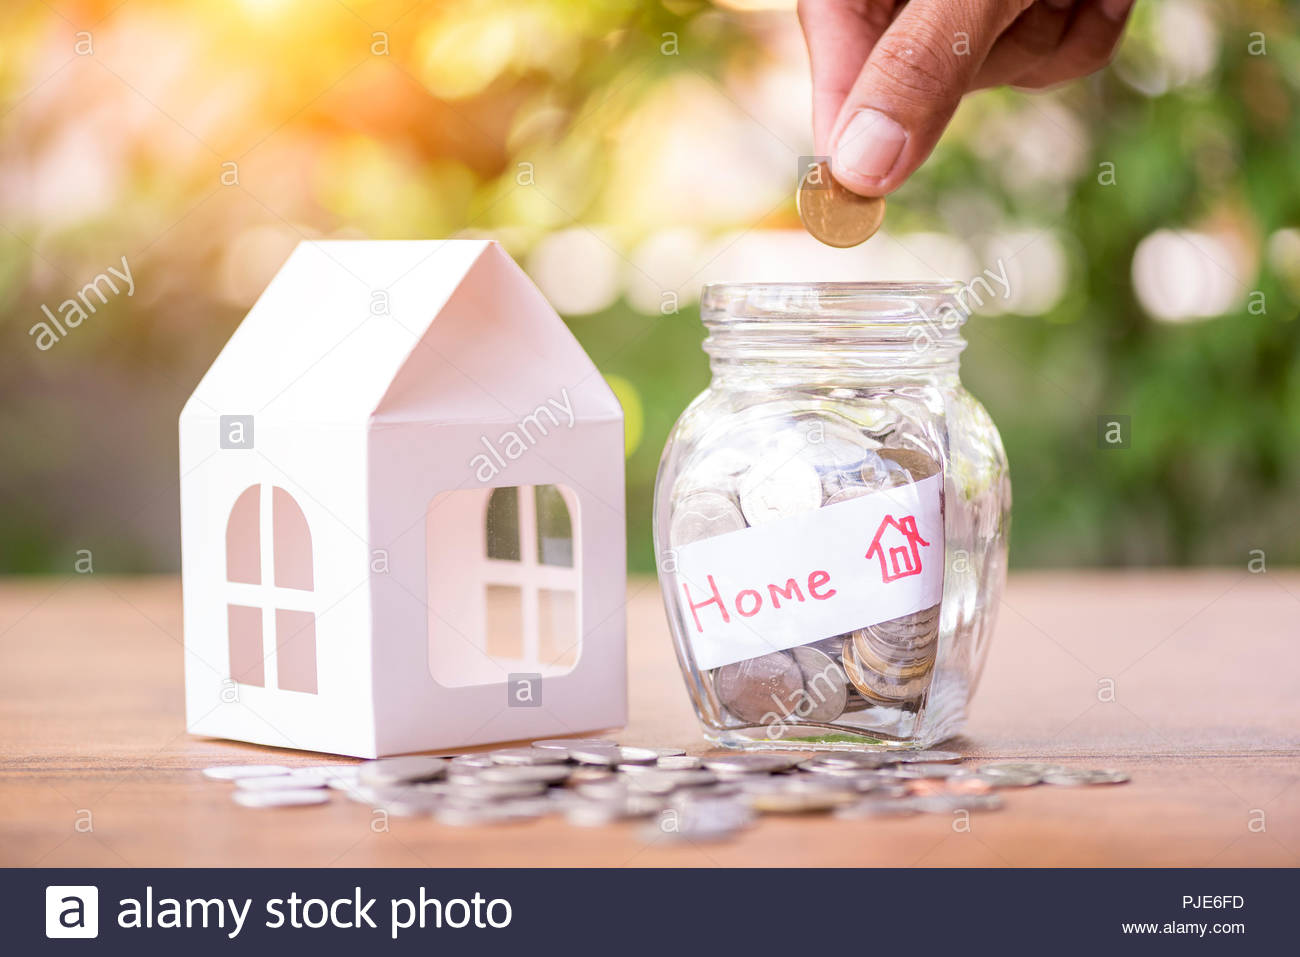 Personal Loan For Home Deposit